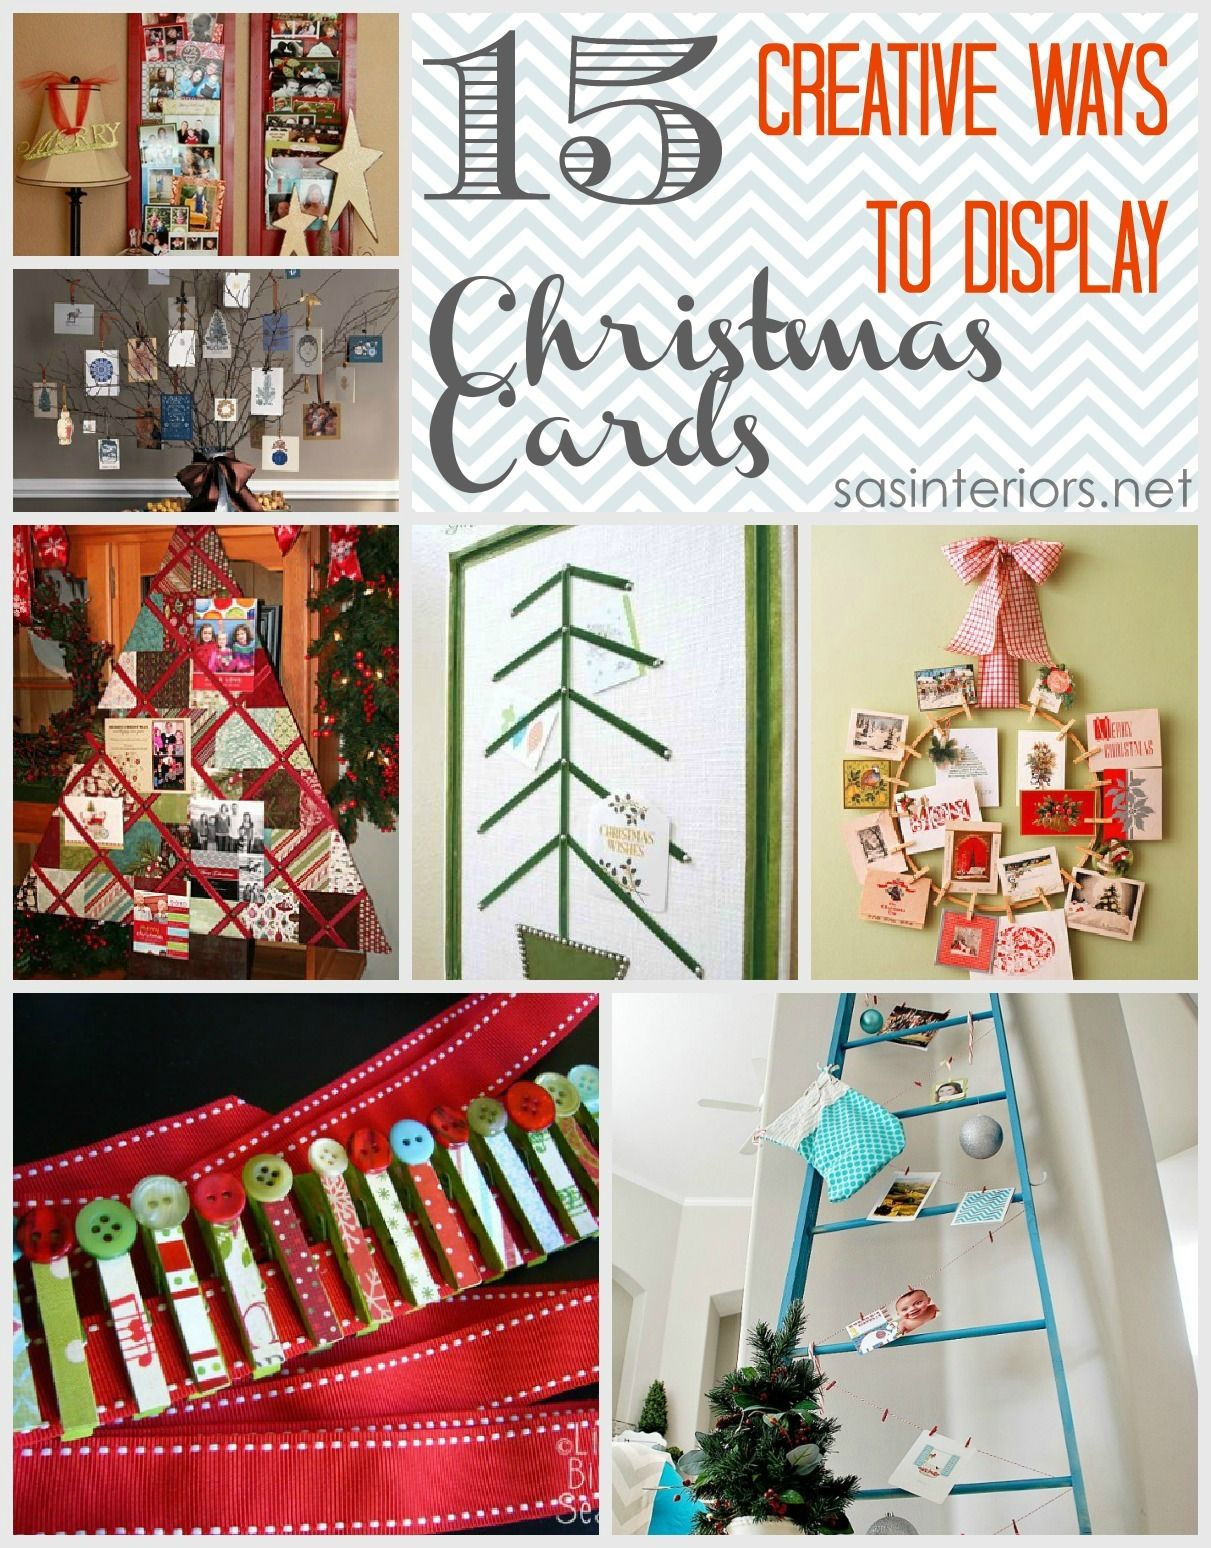 15 creative ways to display christmas cards easy and fun do it 15 creative ways to display christmas cards easy and fun do it yourself creations solutioingenieria Image collections